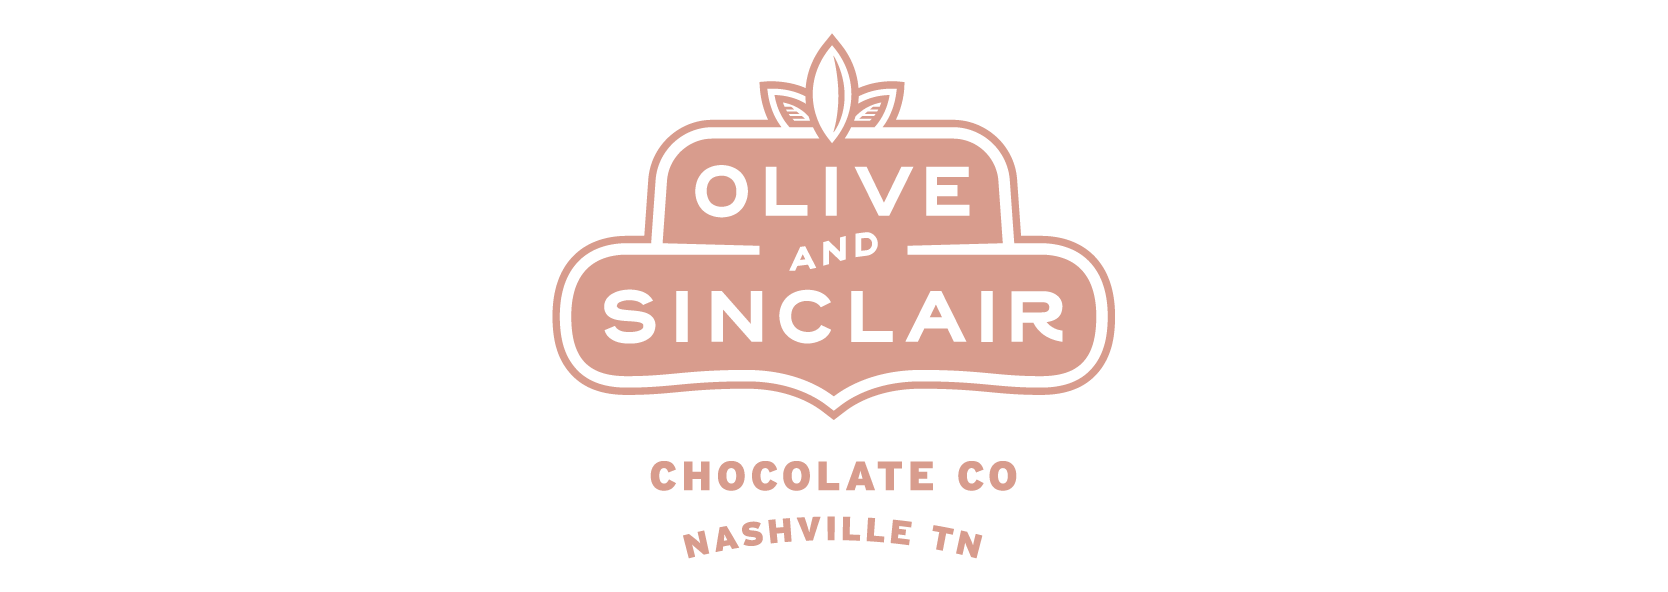 sponsors_olive and sinclair.png